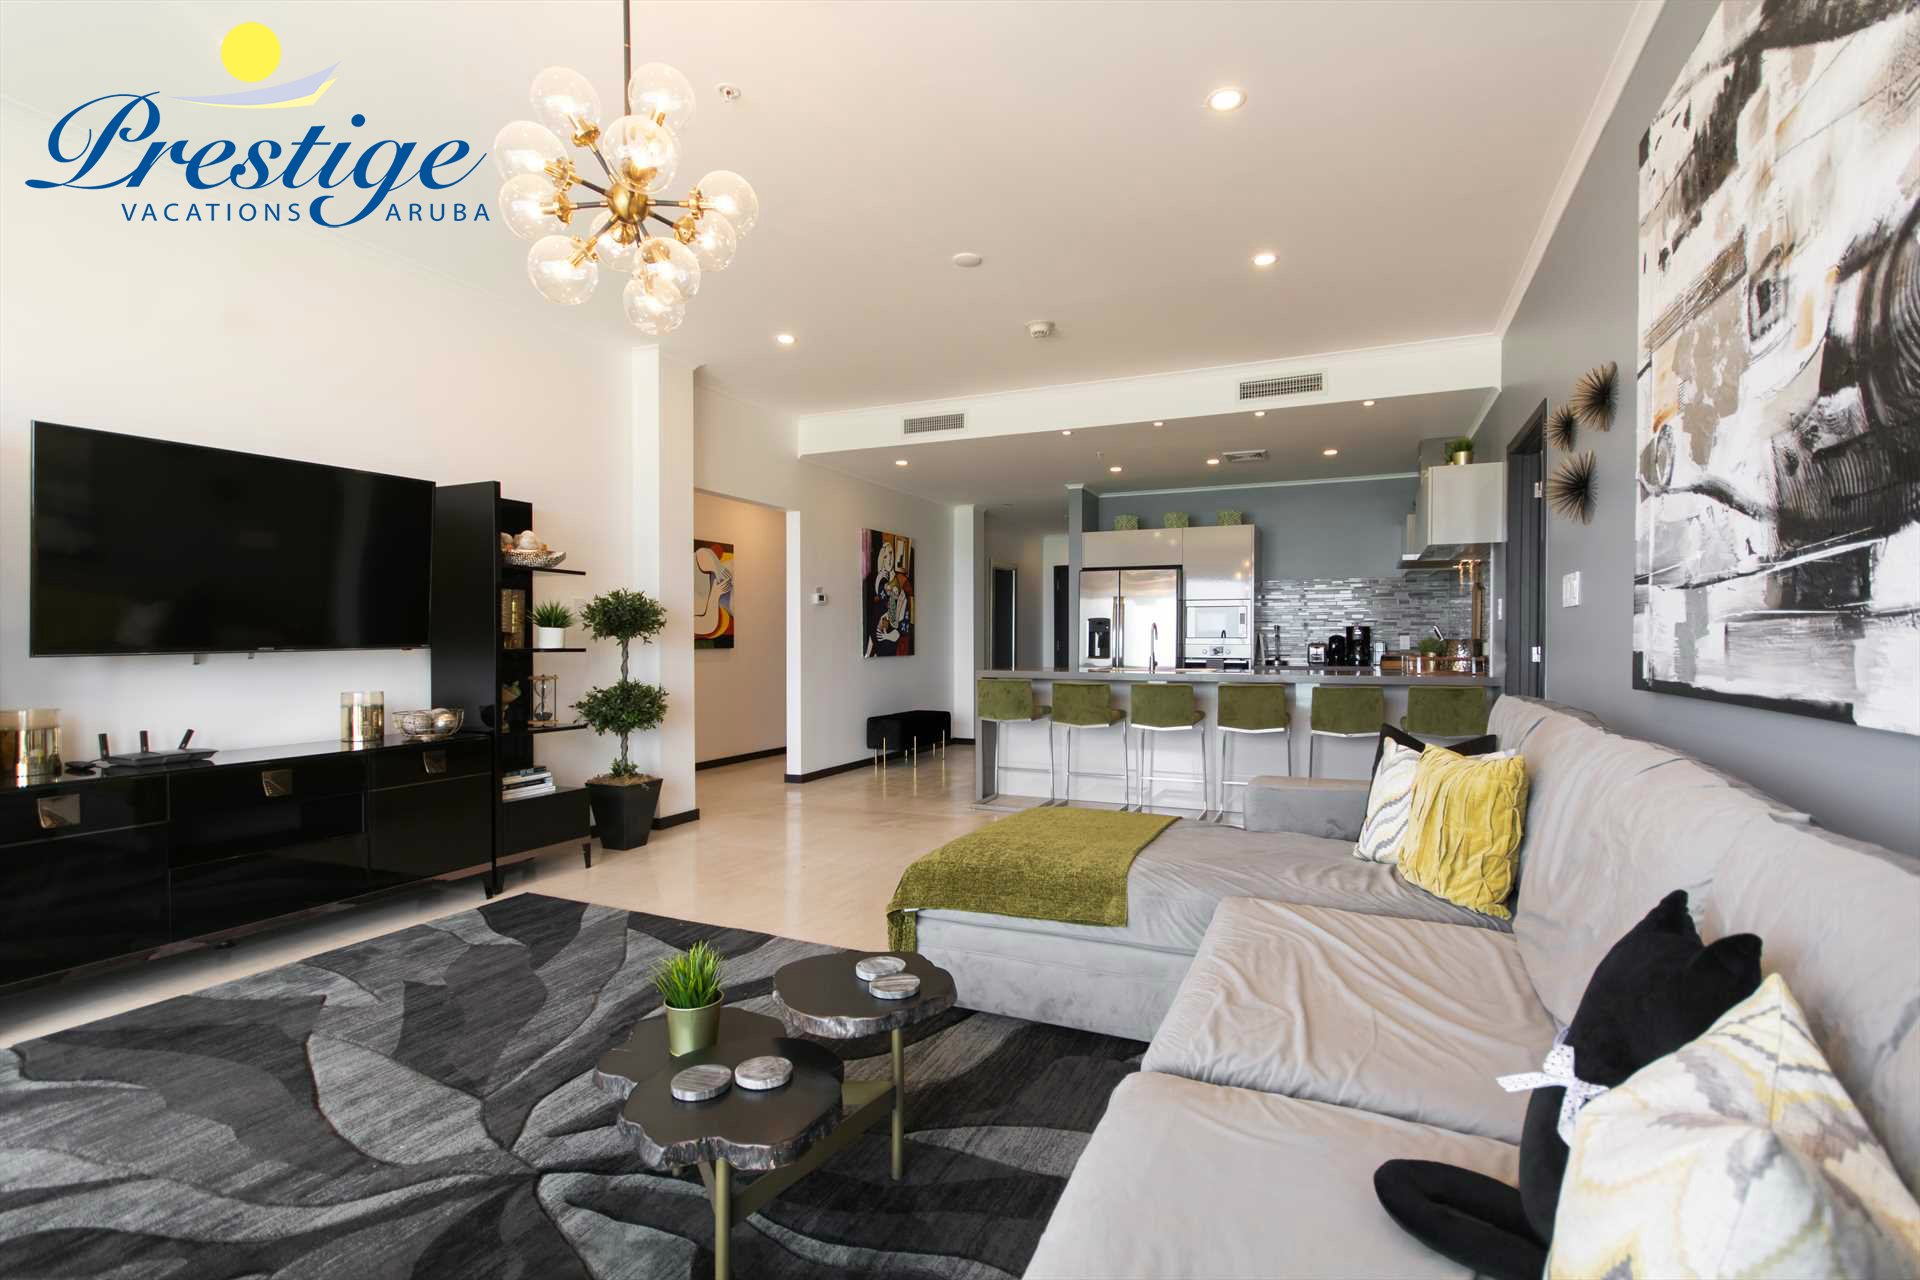 The spacious living area with a large TV and a large sofa with a chaise